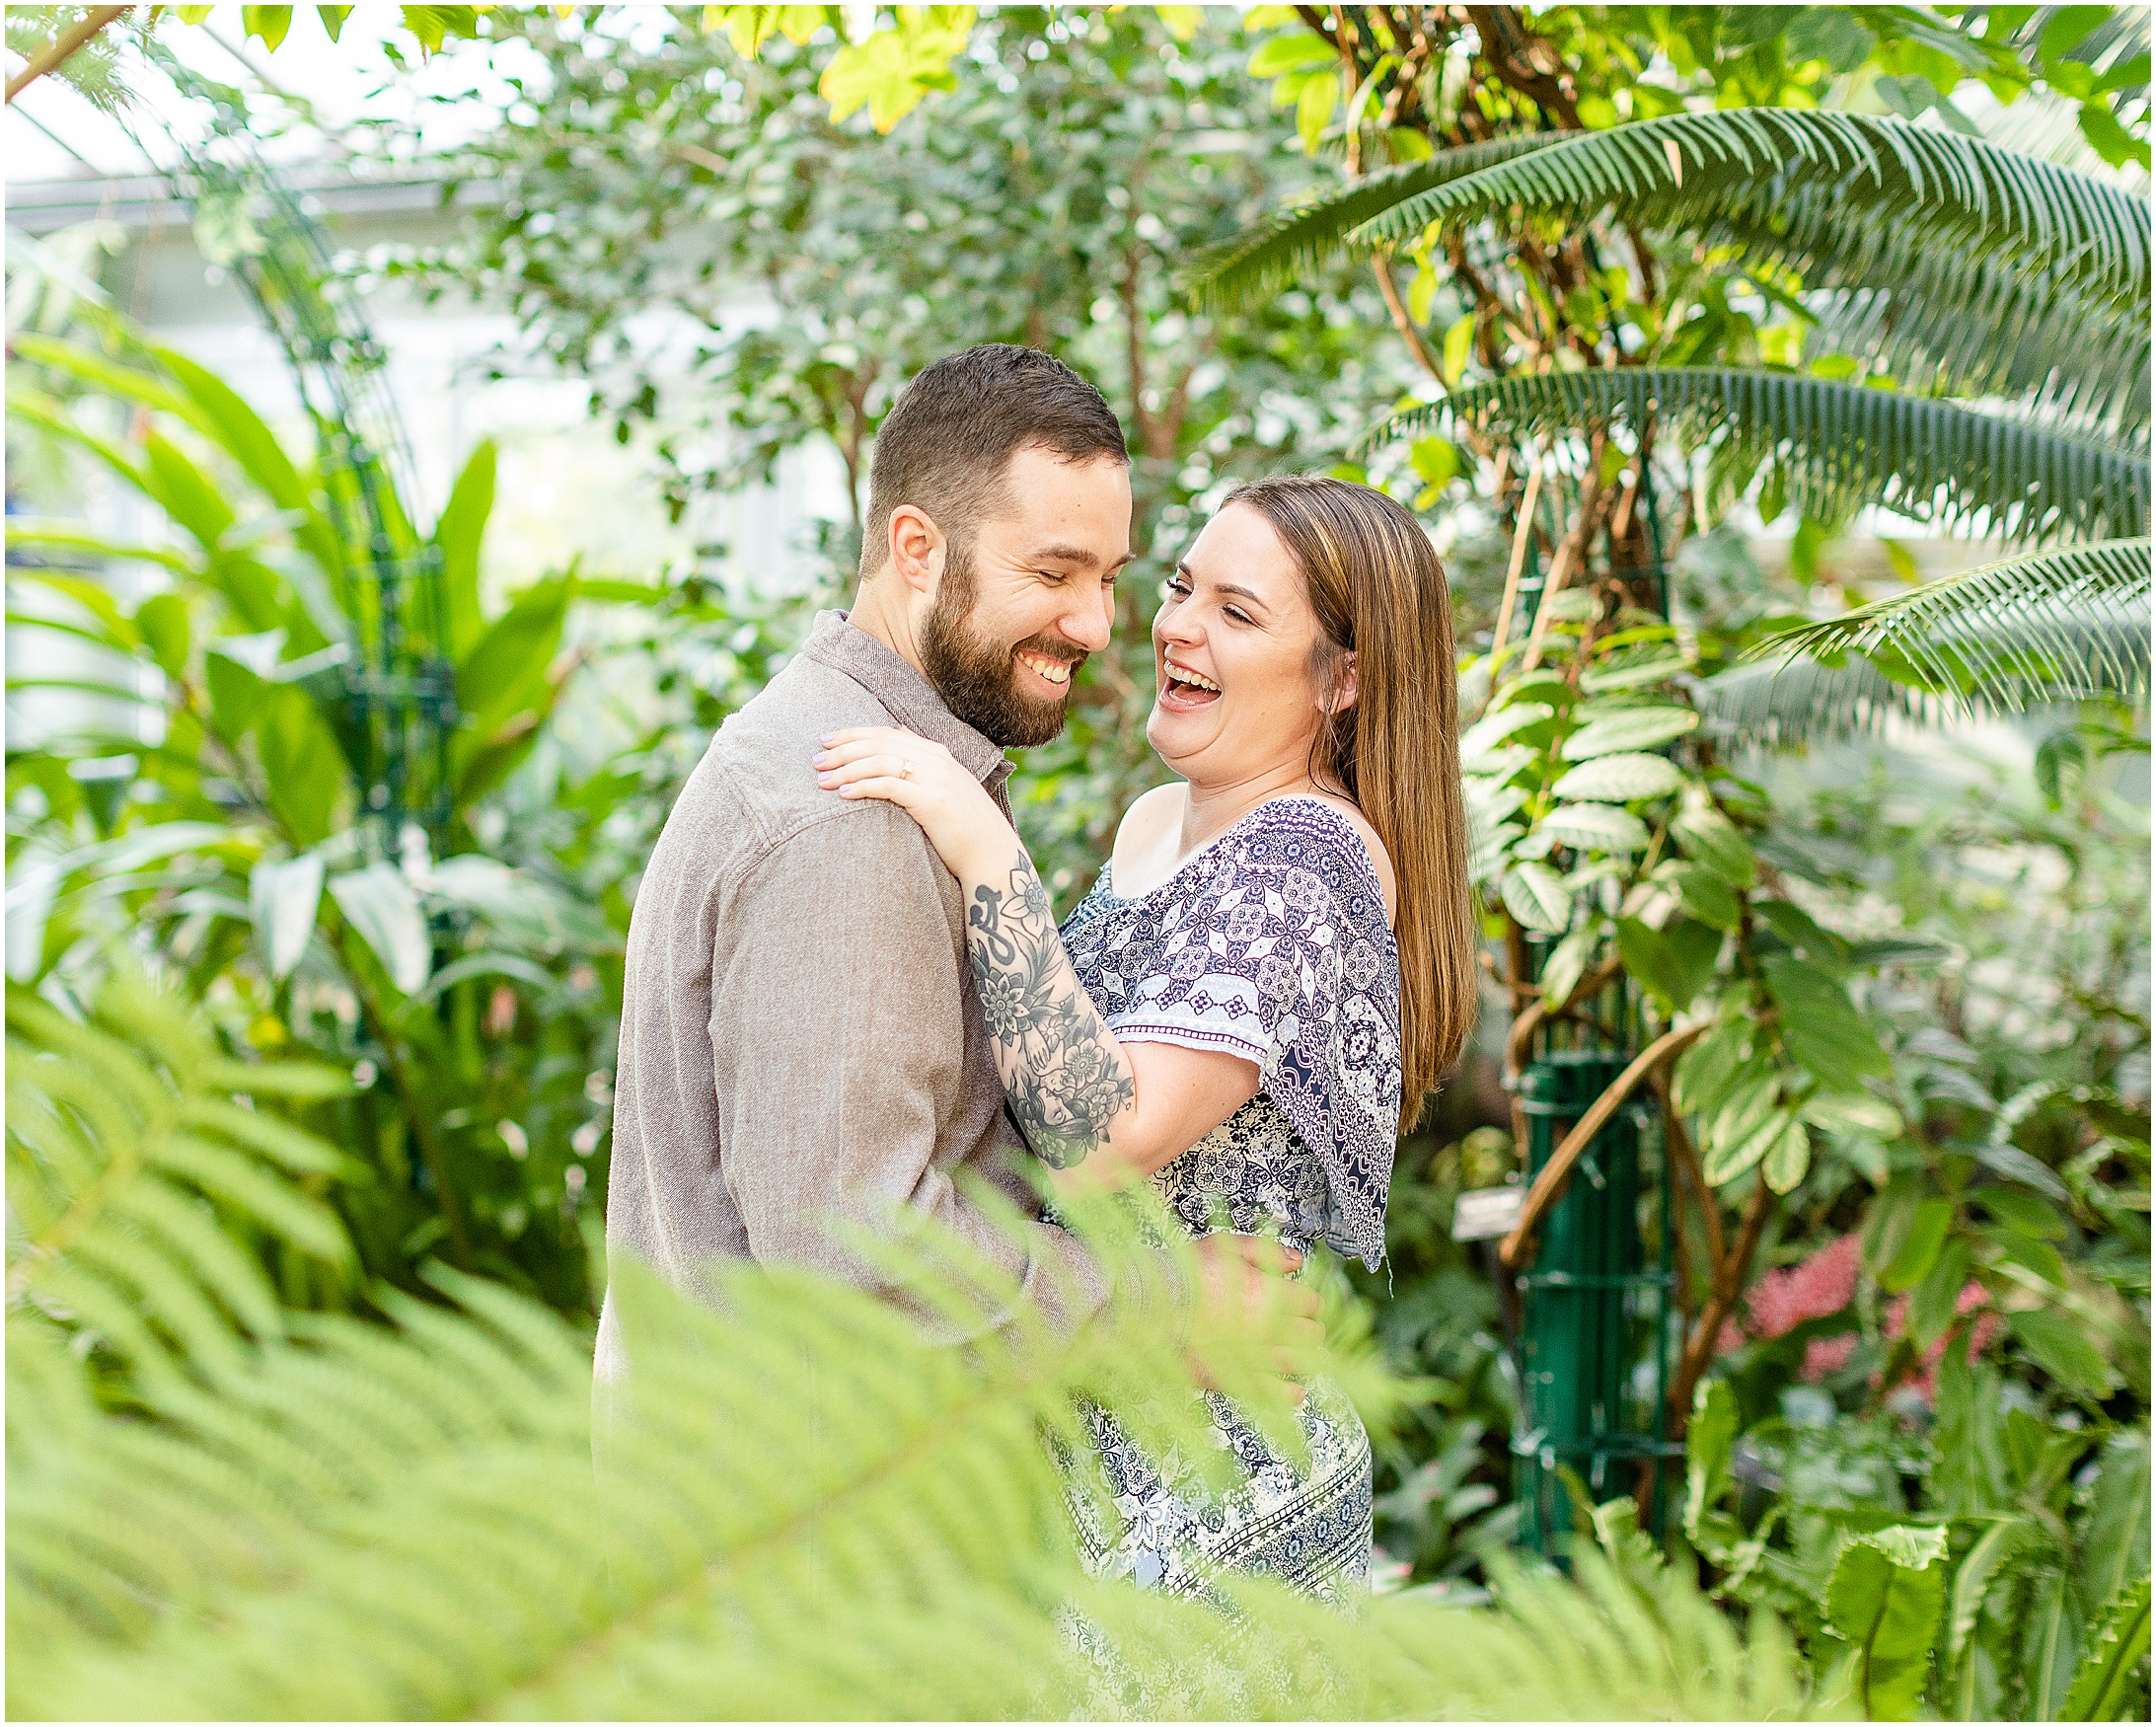 Rawlings-Conservatory-Engagement-Photos_0285.jpg